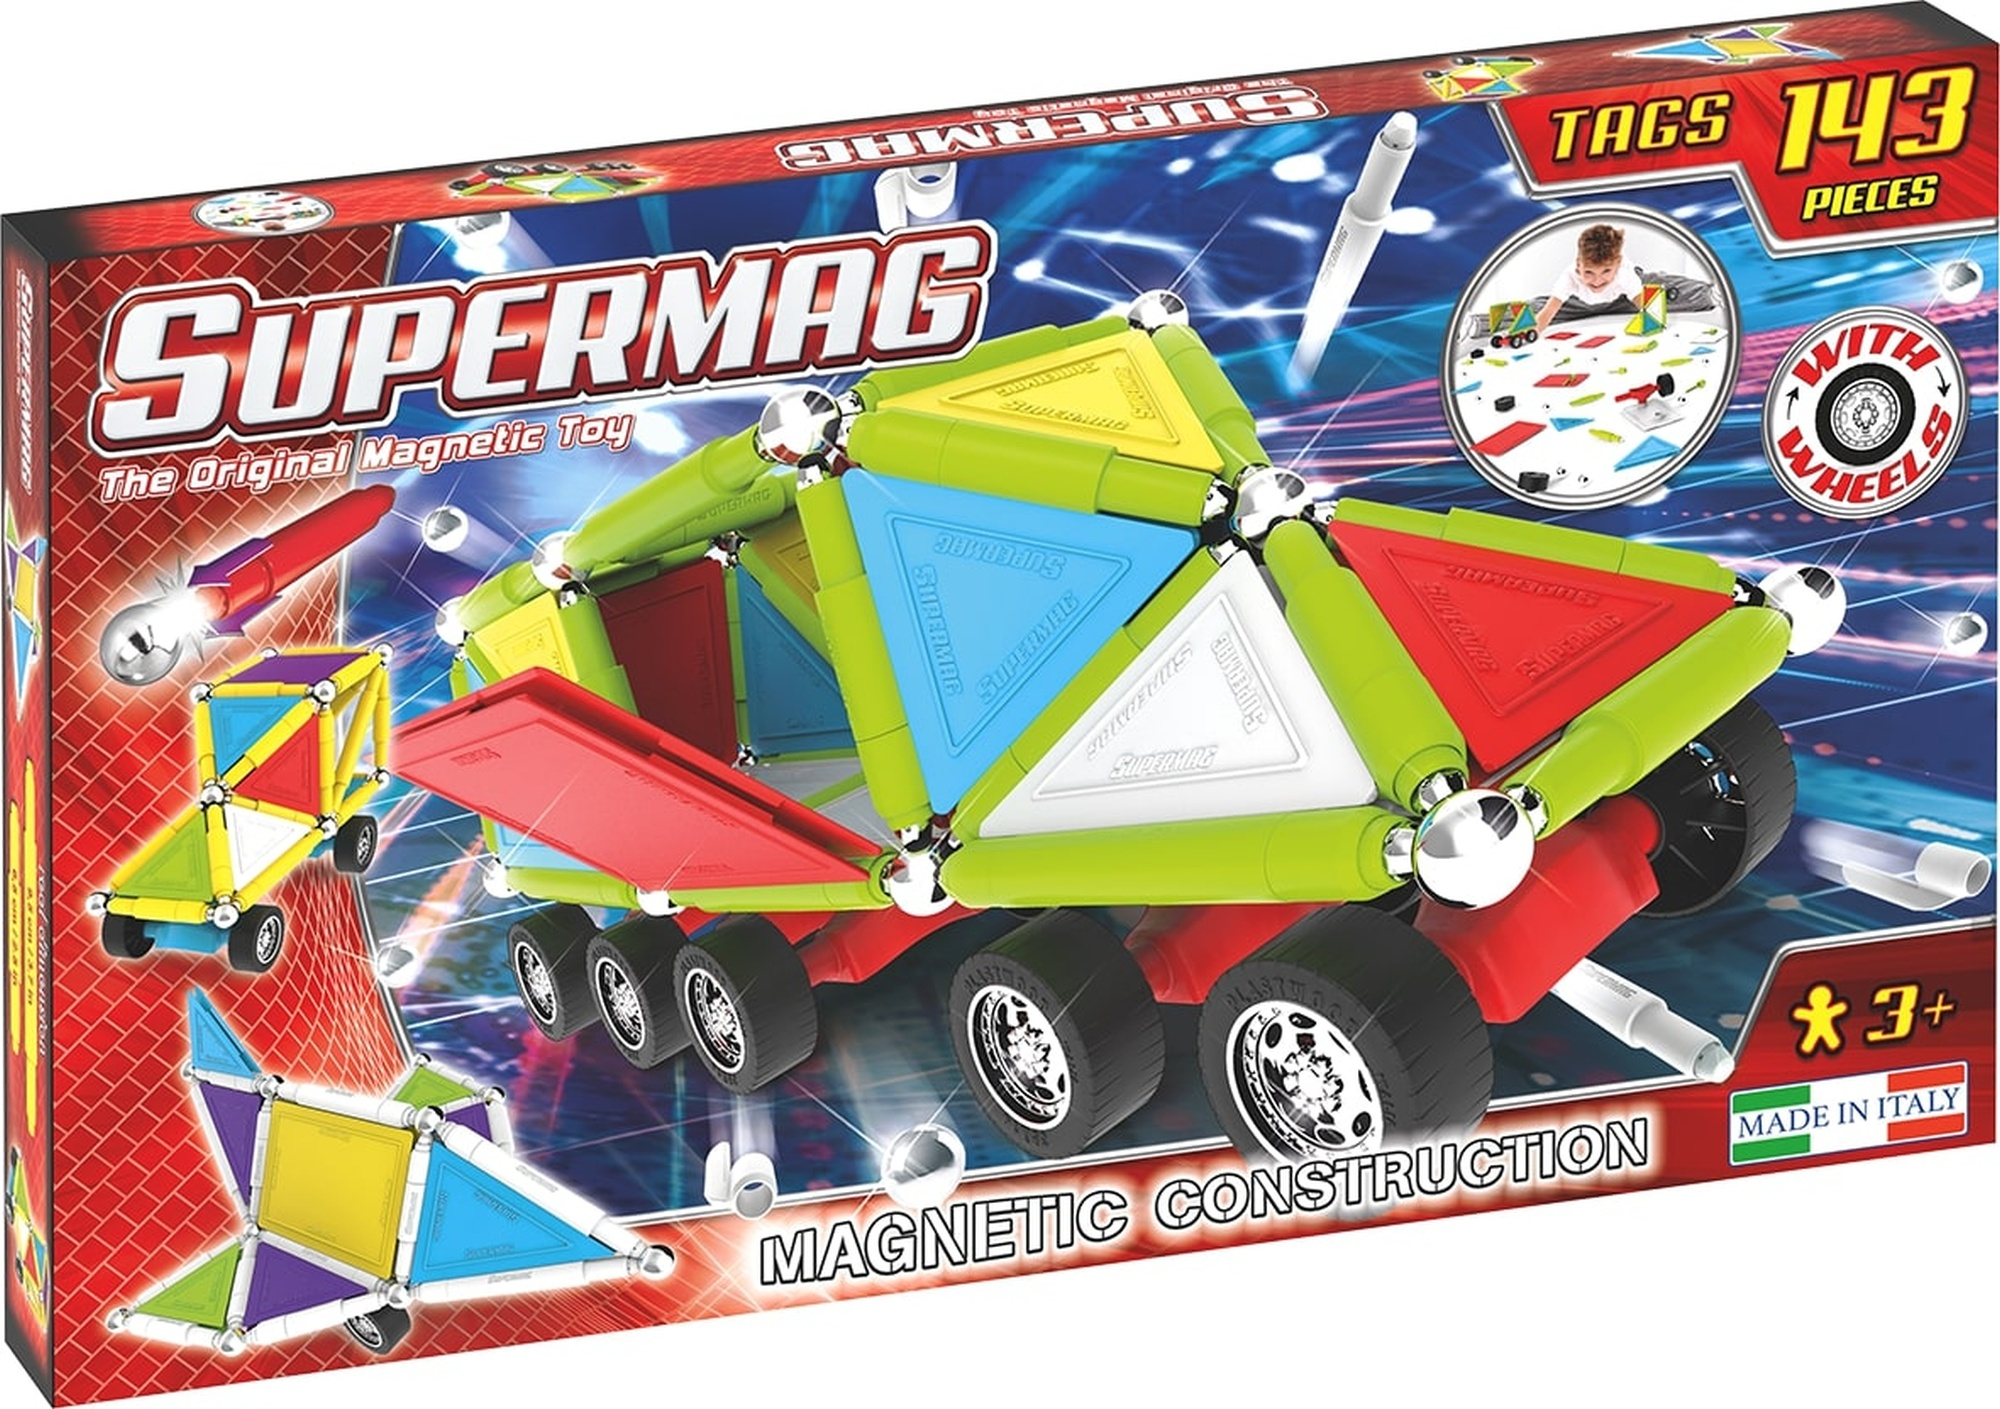 Set constructie magnetic 143 piese tags wheels supermag imagine